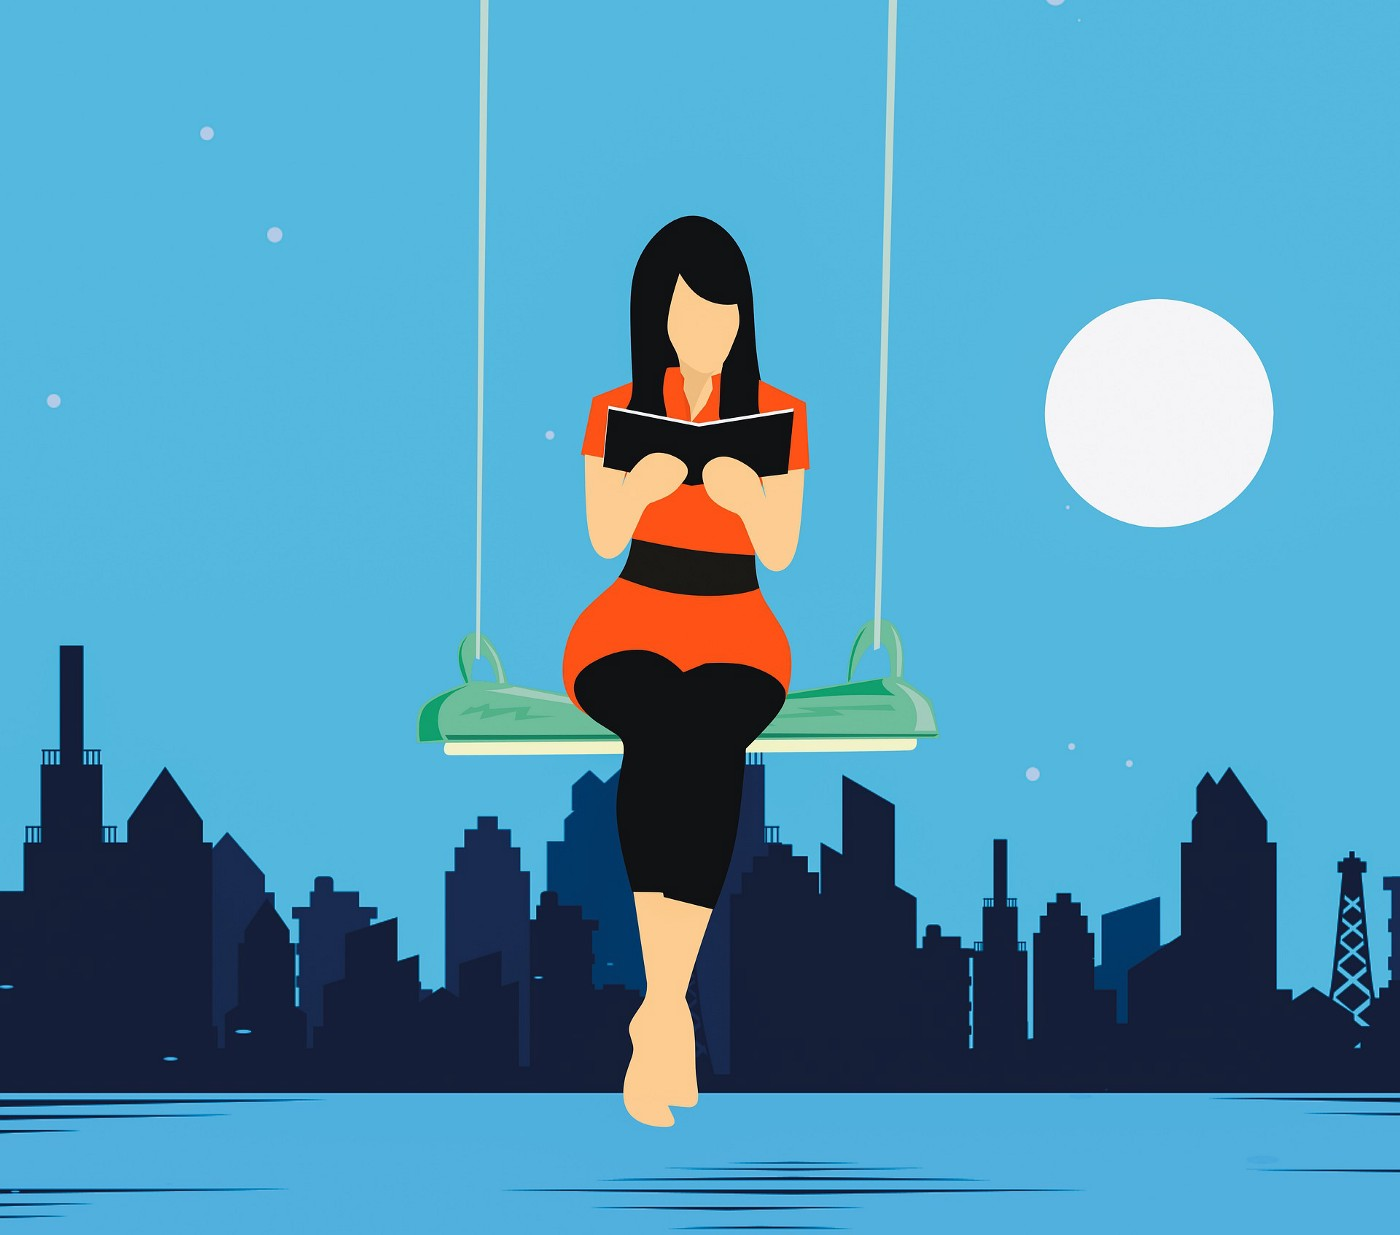 Illustration of a woman sitting on a swing, reading in moonlight.